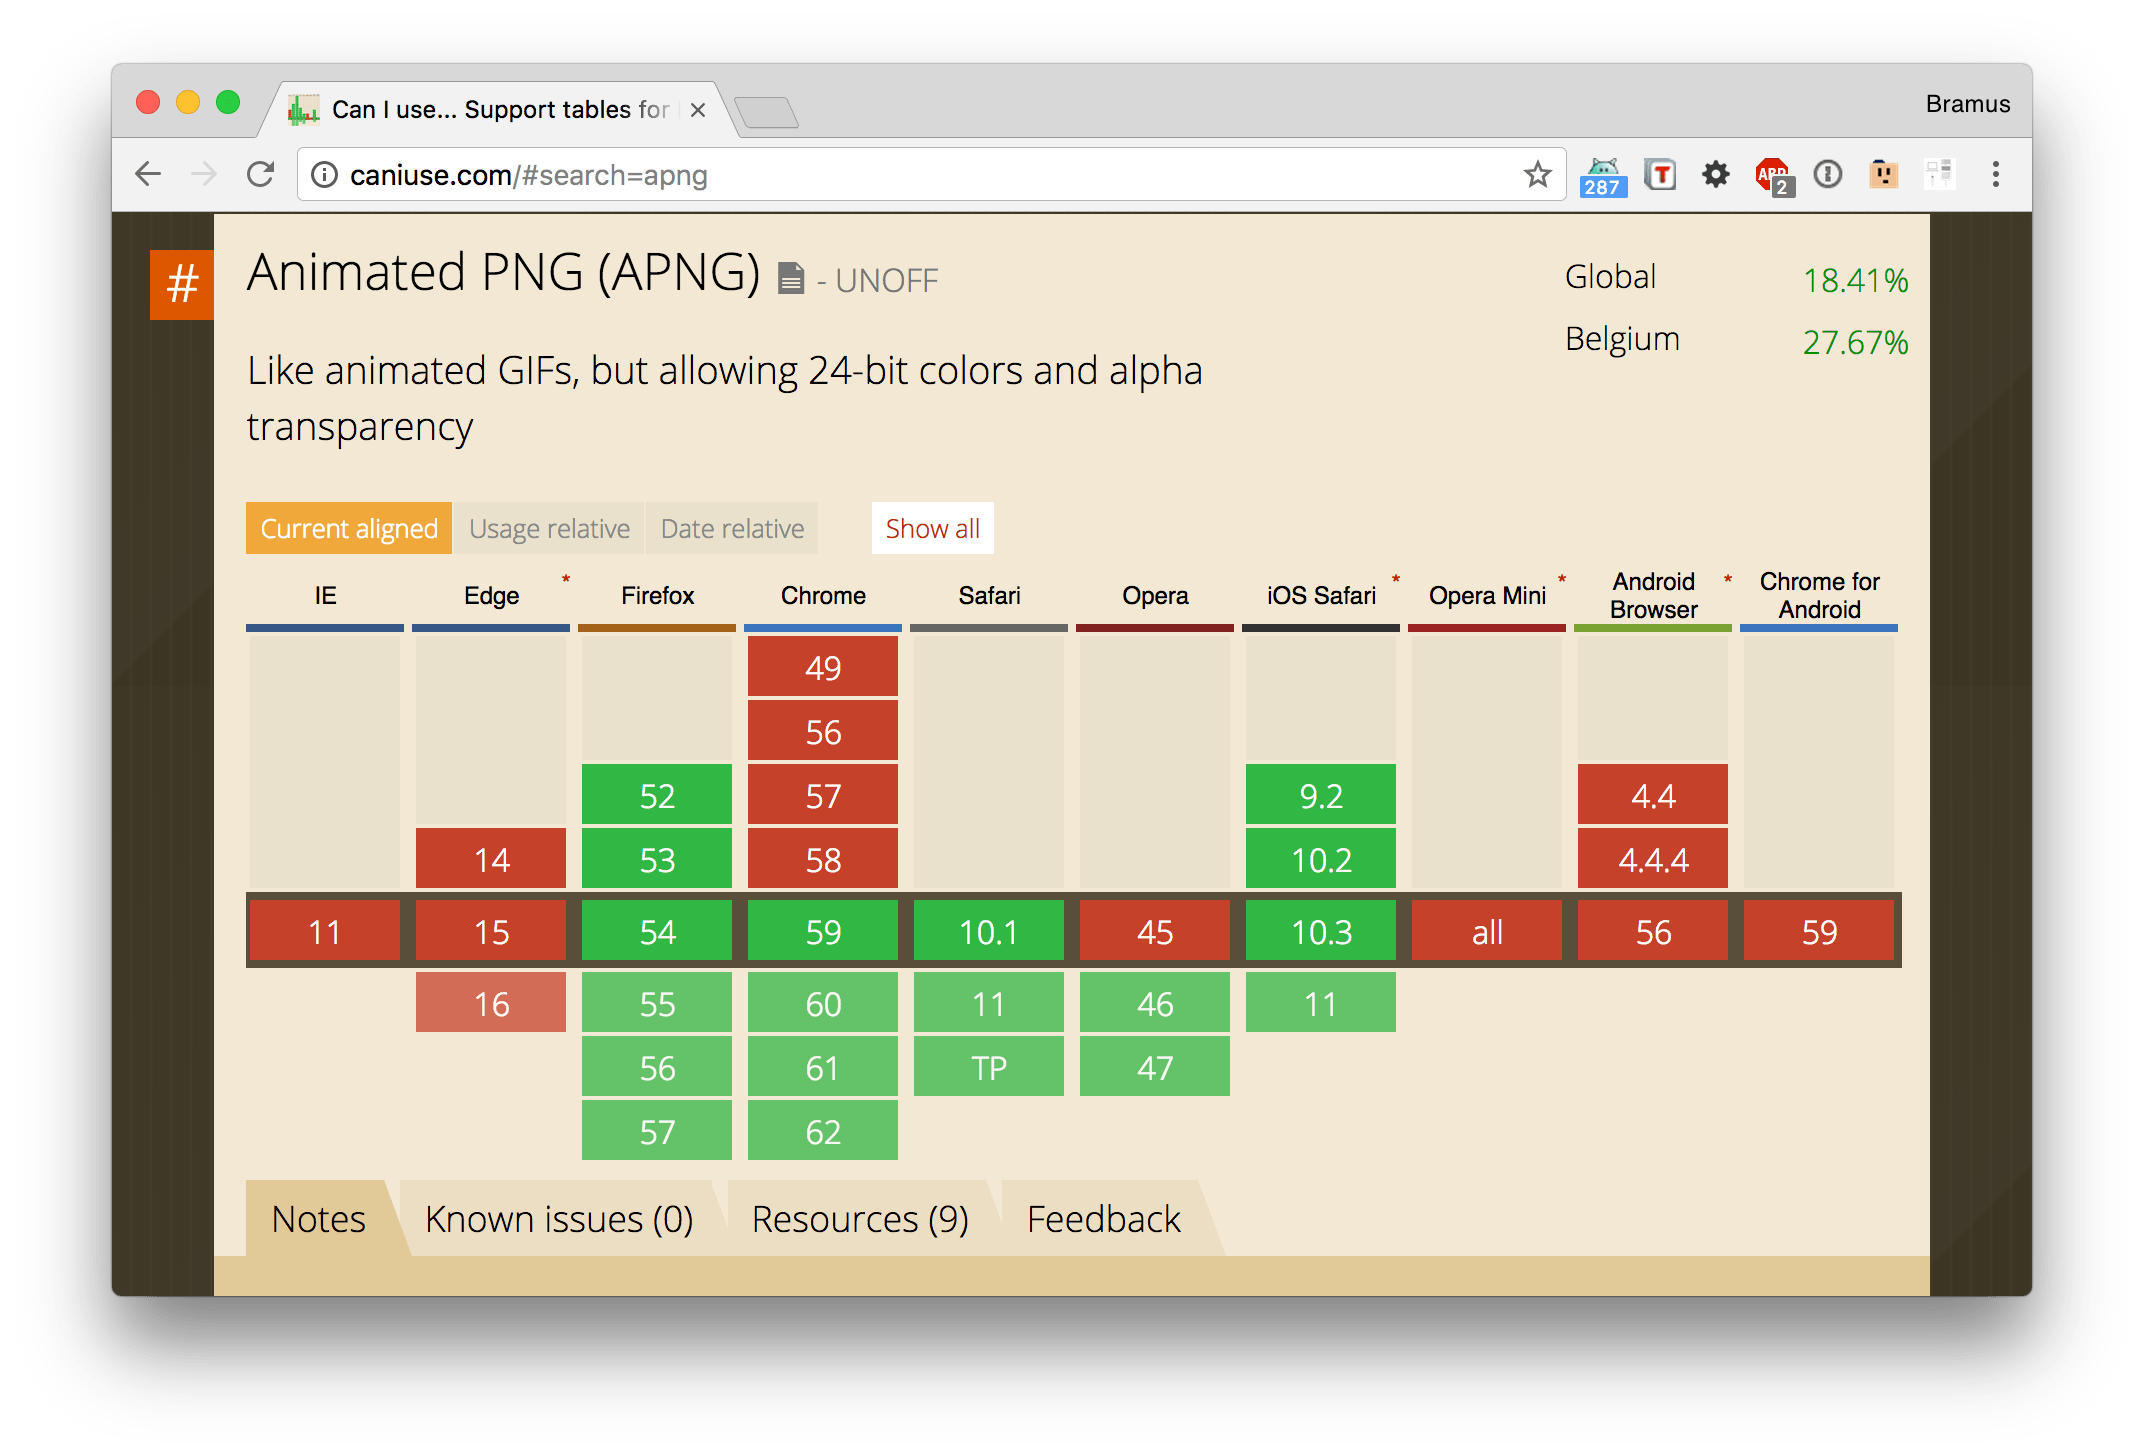 Chrome animated png. Opera and now support